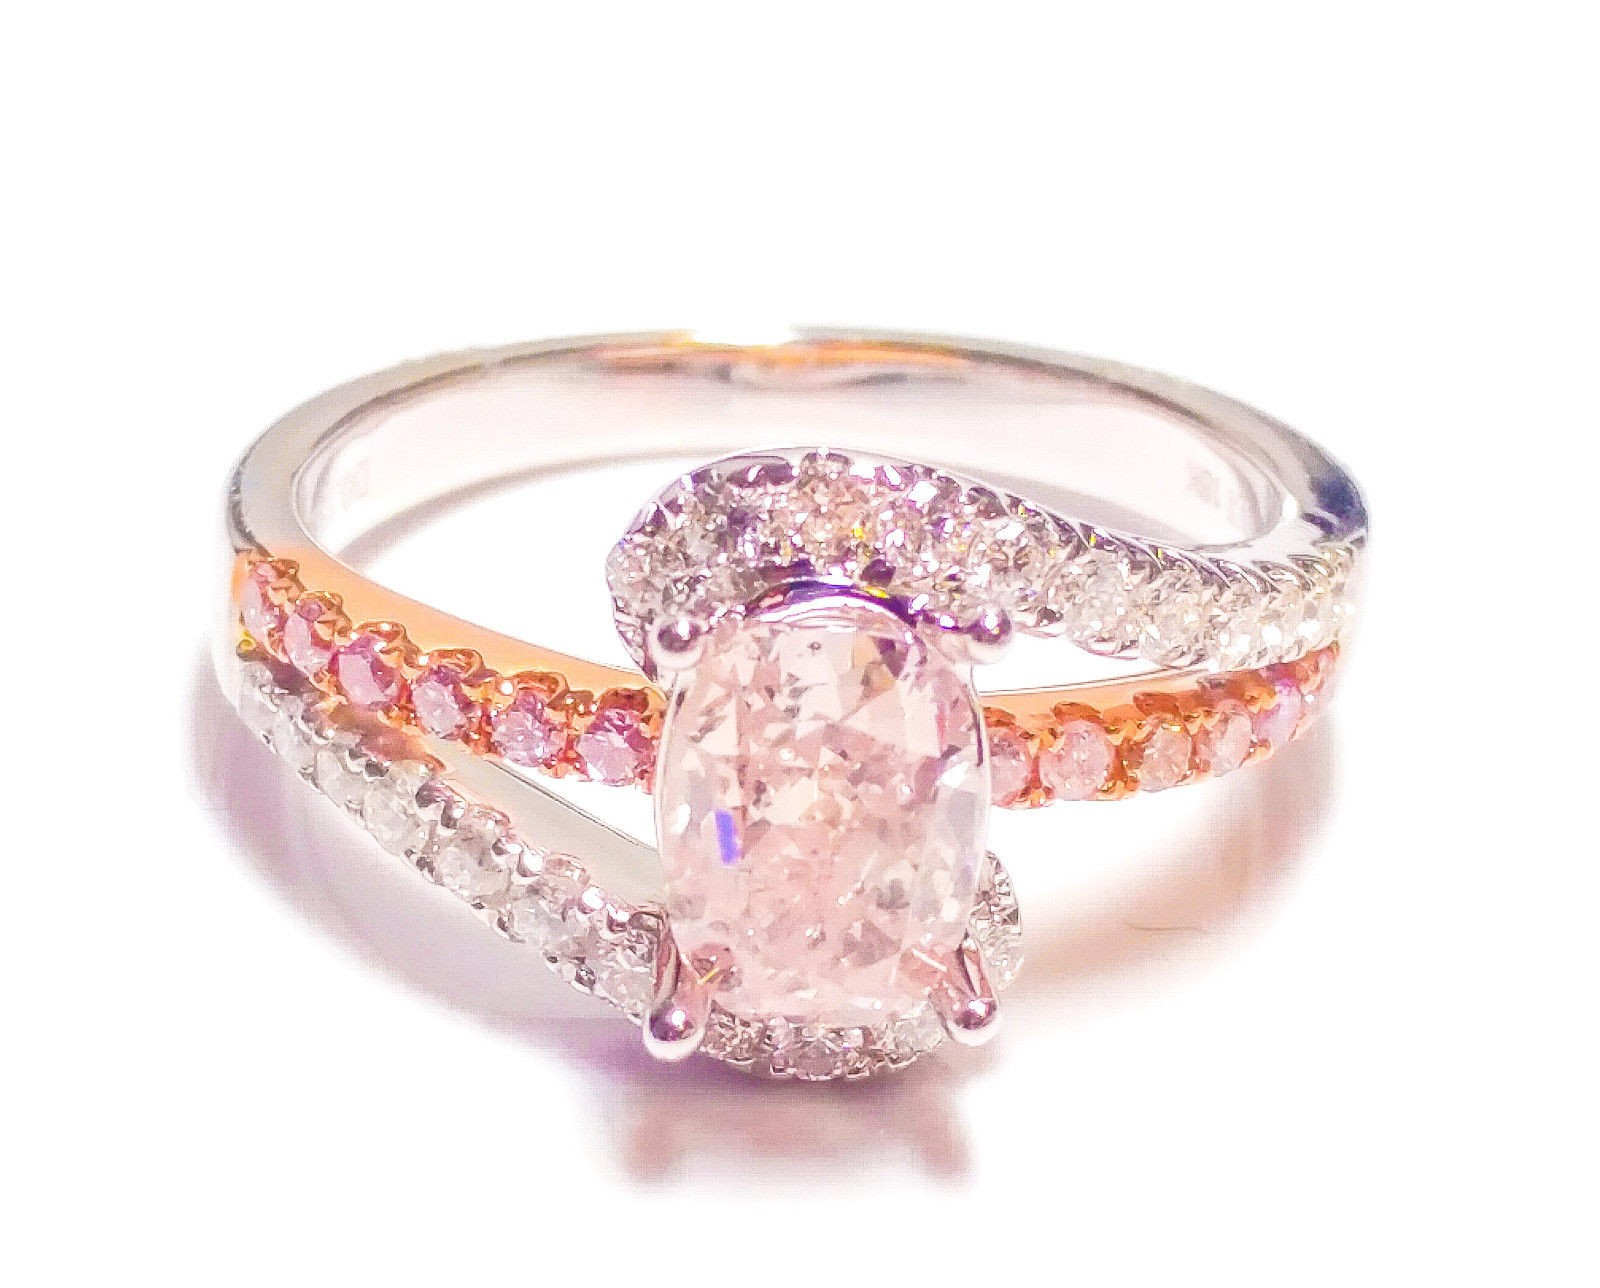 Fancy Pink Diamond Ring: Natural Fancy Pink Diamonds & Jewelry ...